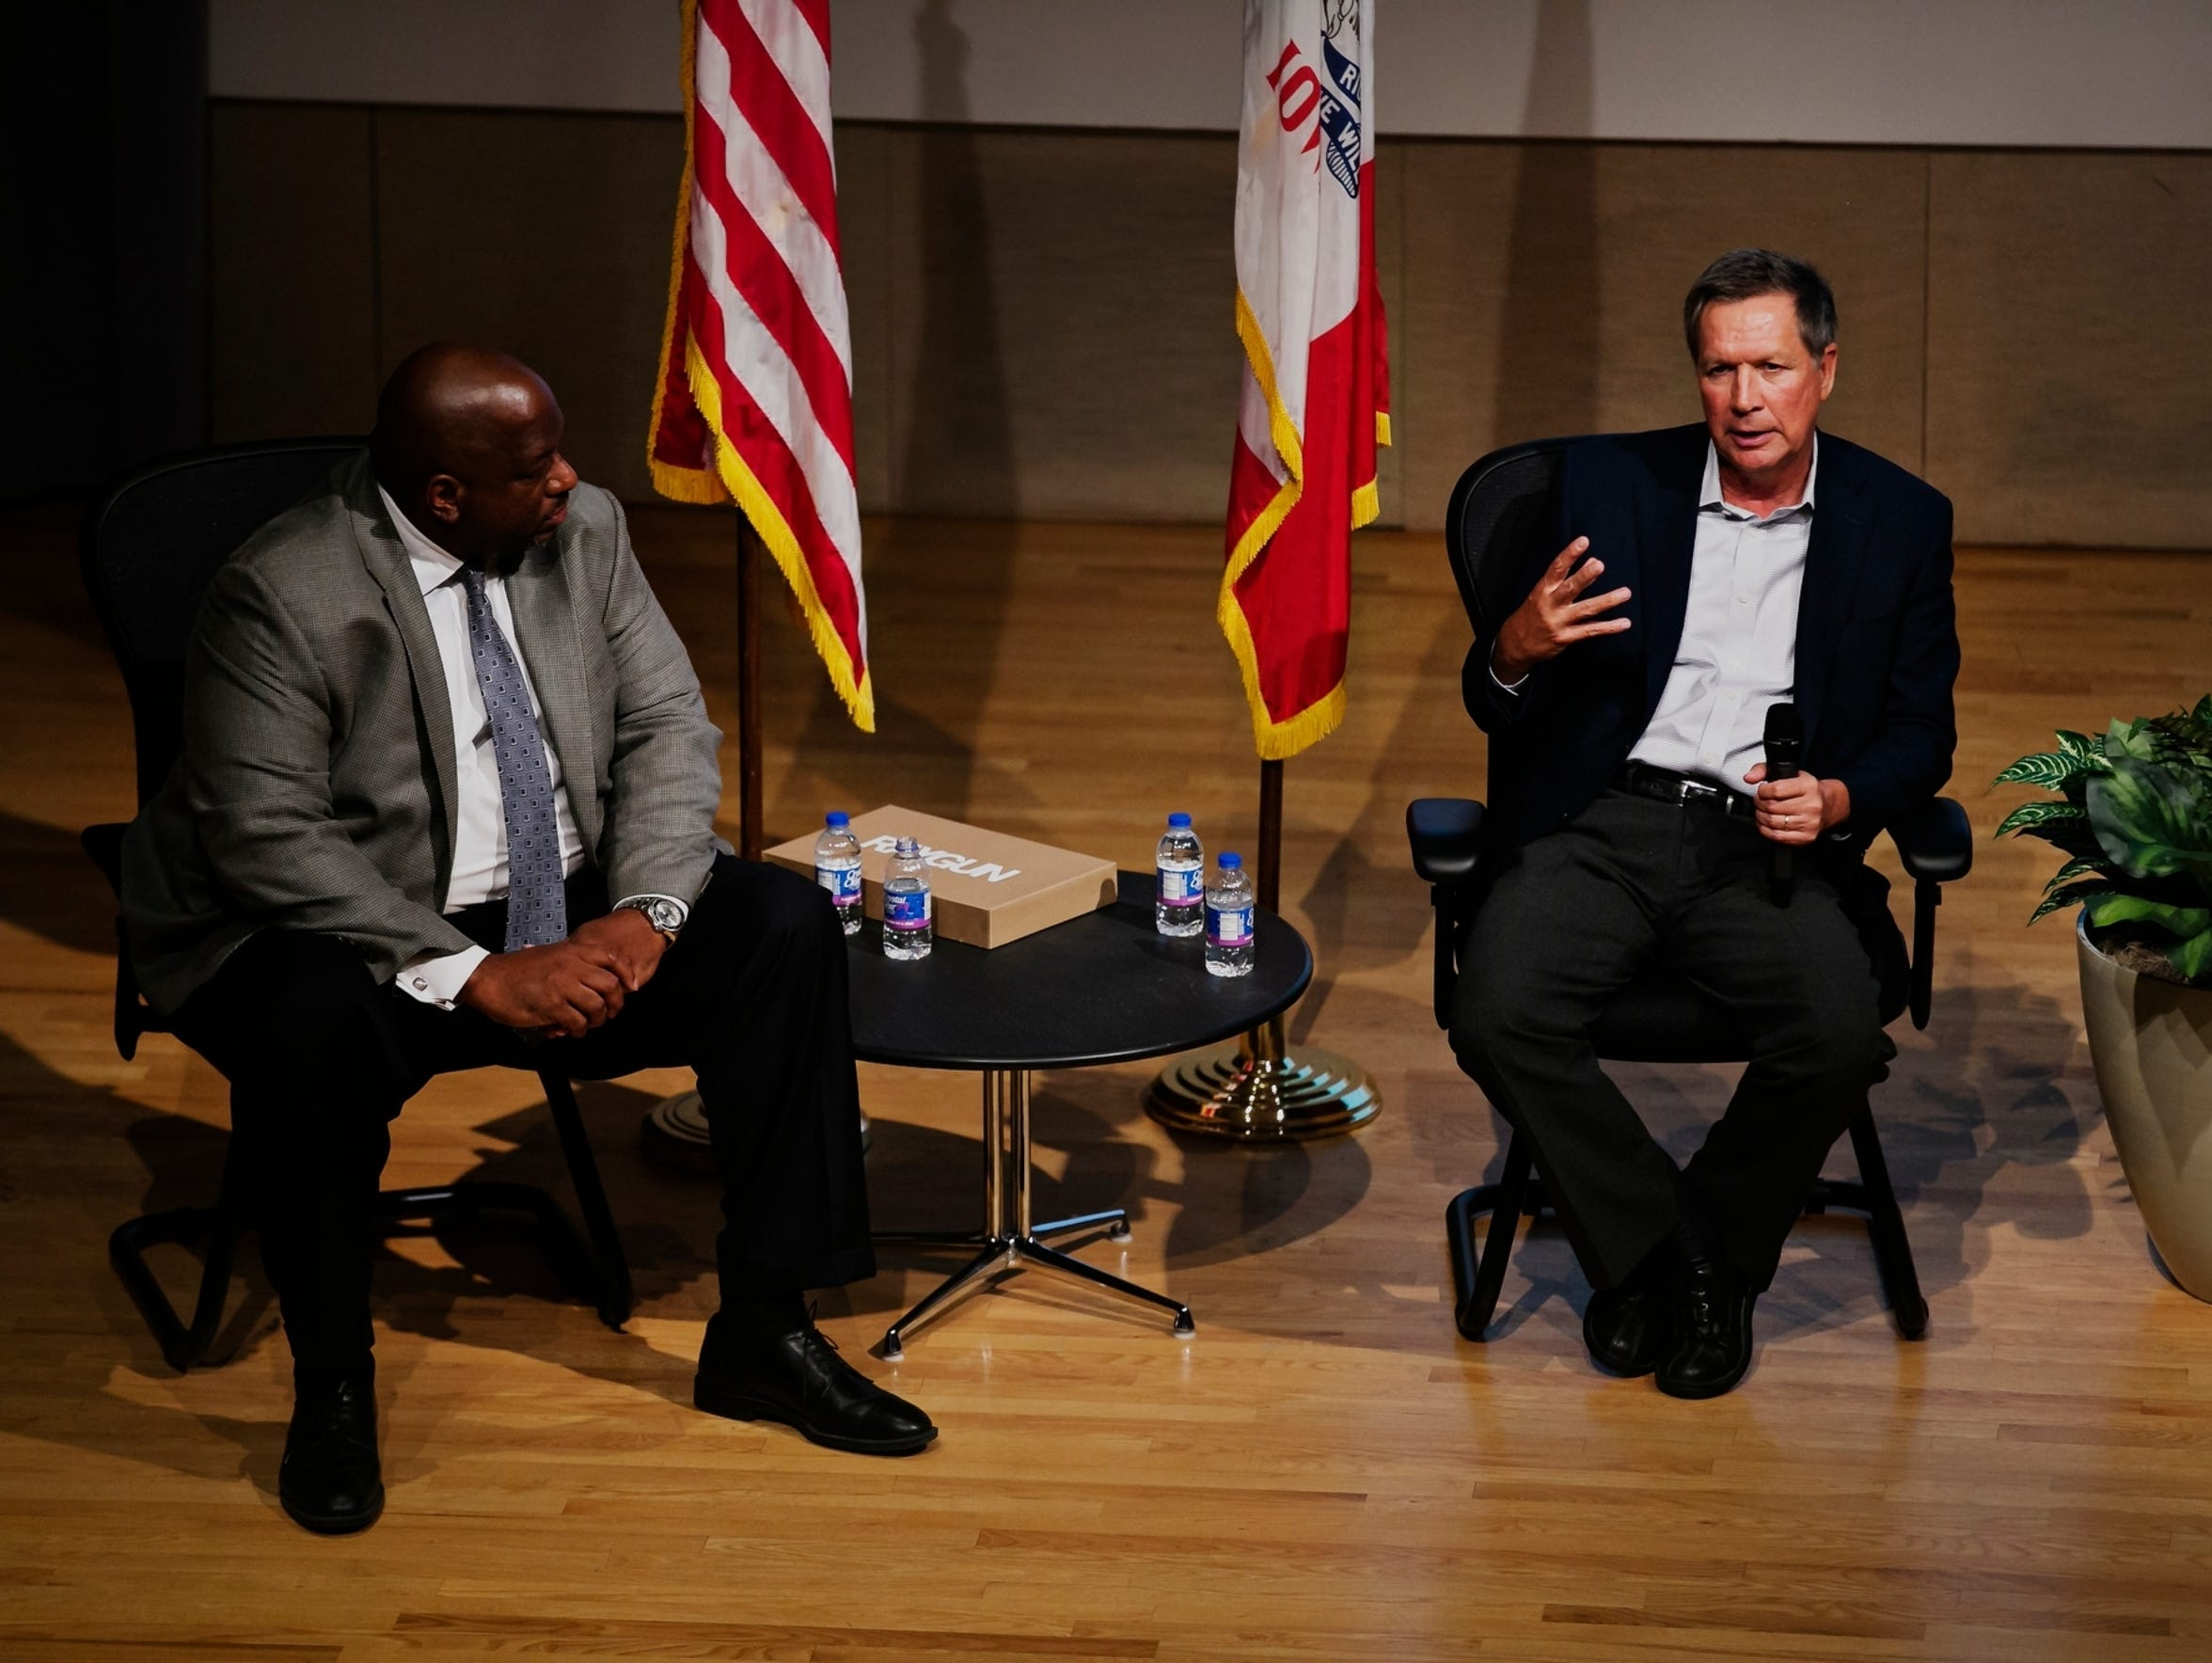 Ohio Governor John Kasich answers questions from the